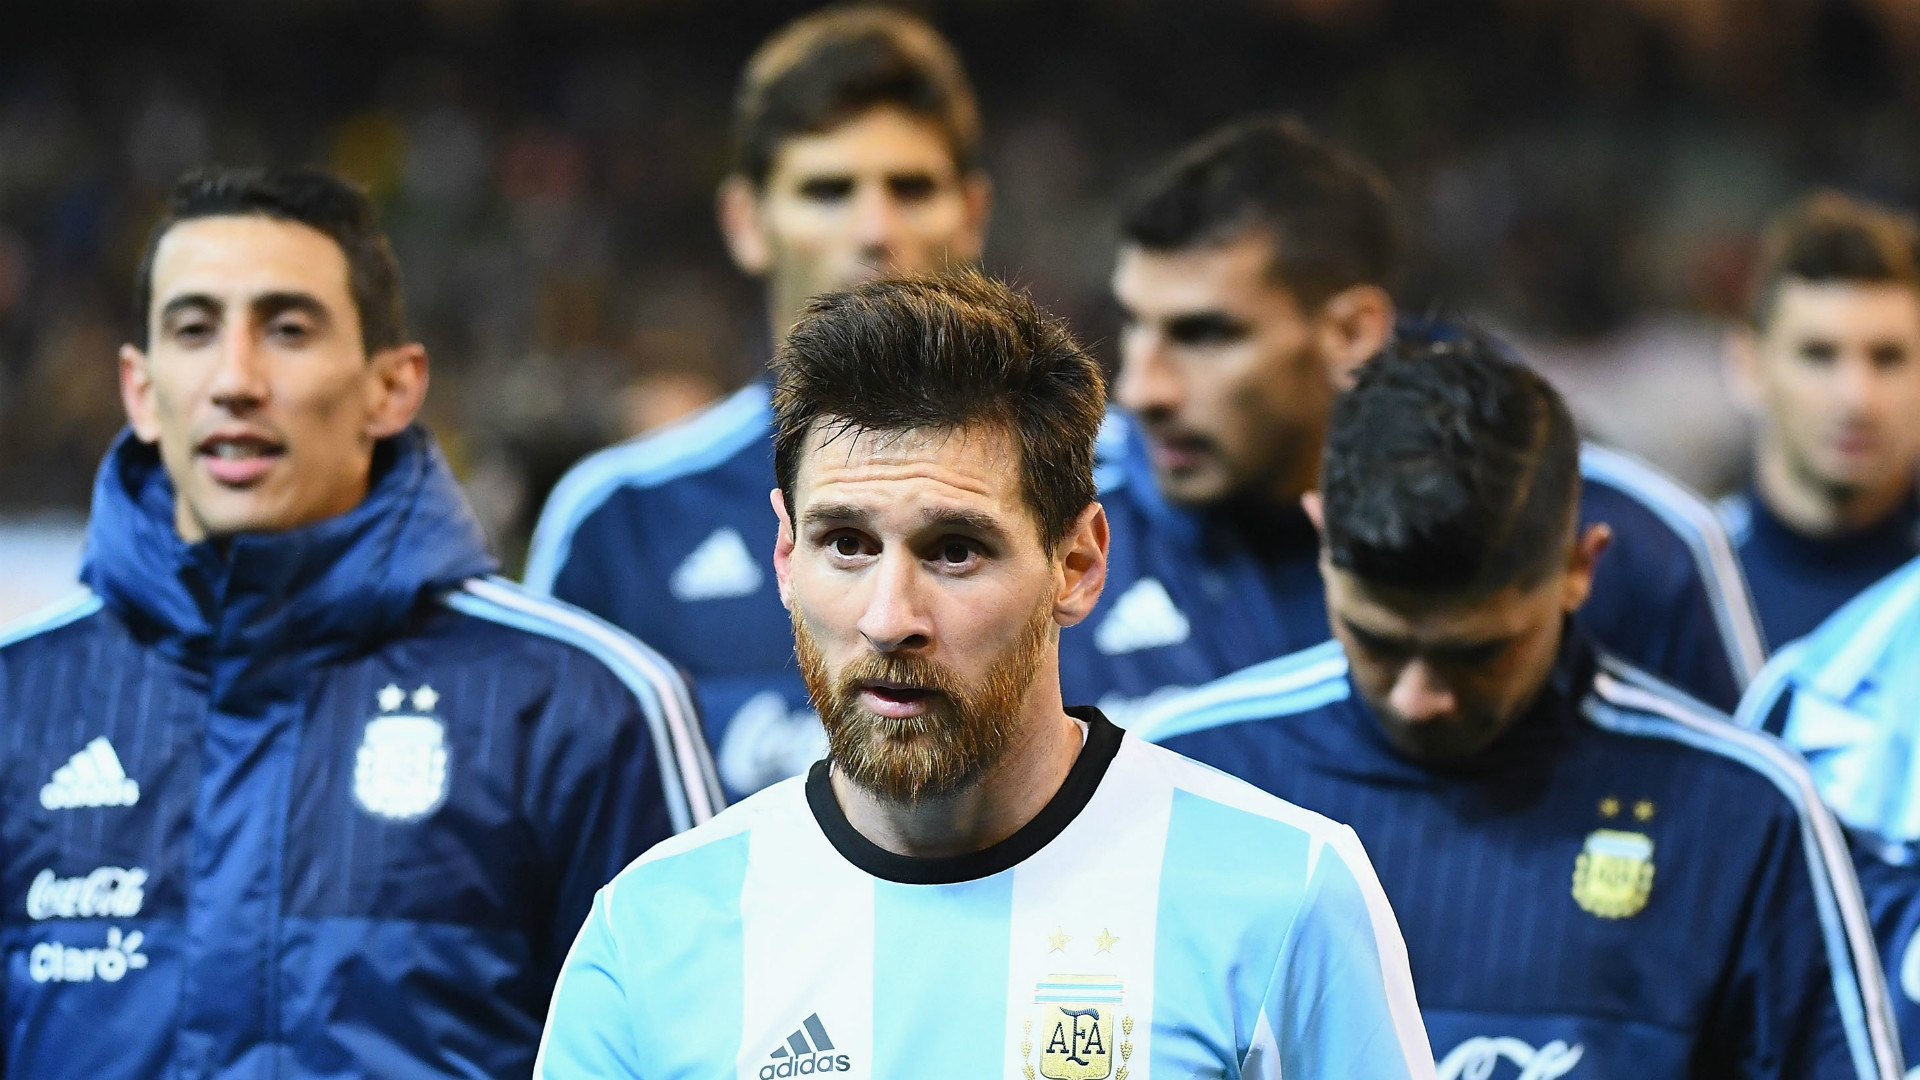 Messi to pay fine and avoid jail time